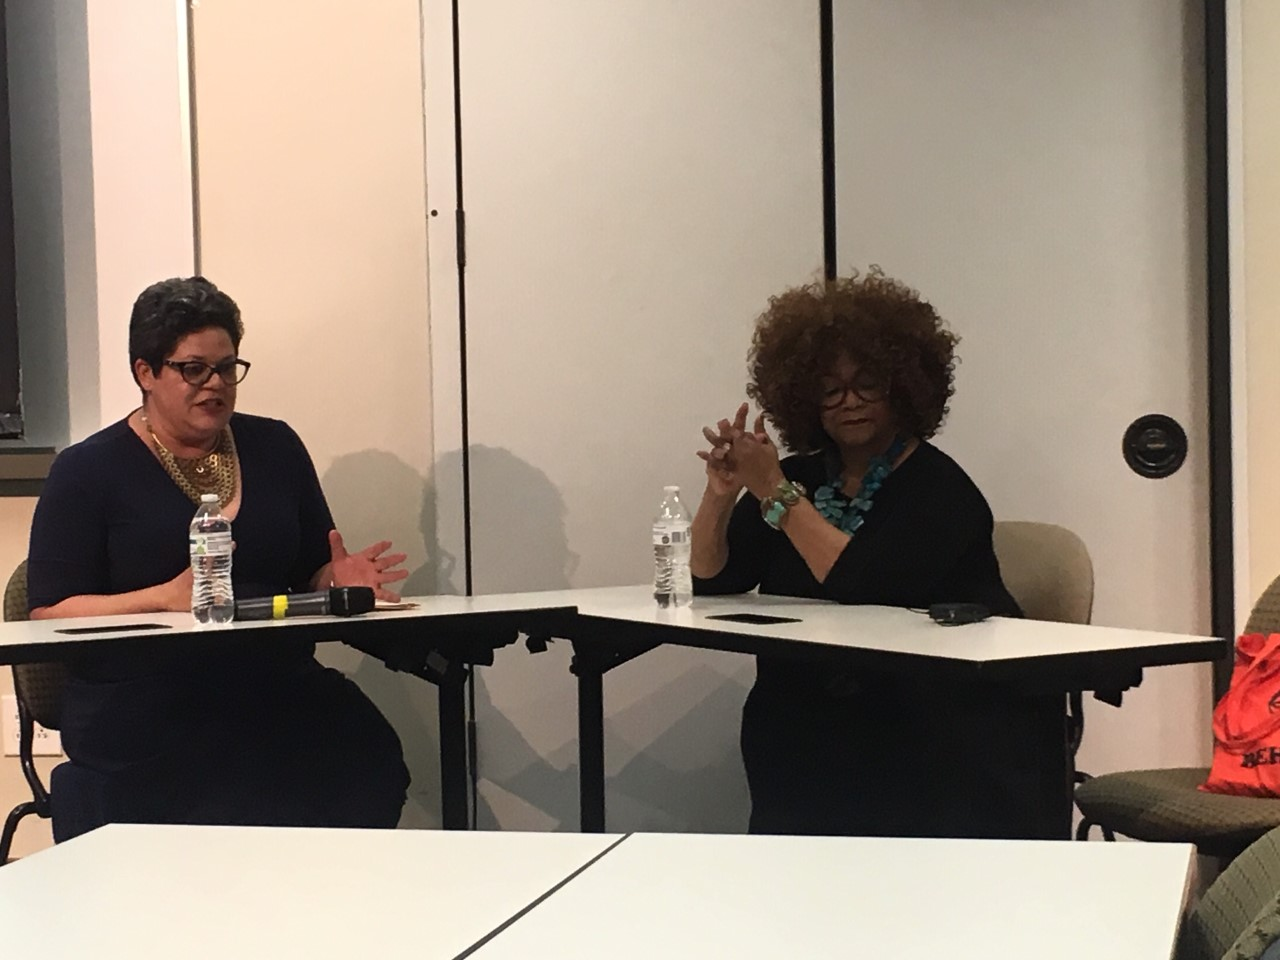 Dr. Tiffany Gilbert, left, and Jacki Shelton Green, right, at Green's Q&A forum at the Watson College of Education on Wednesday.